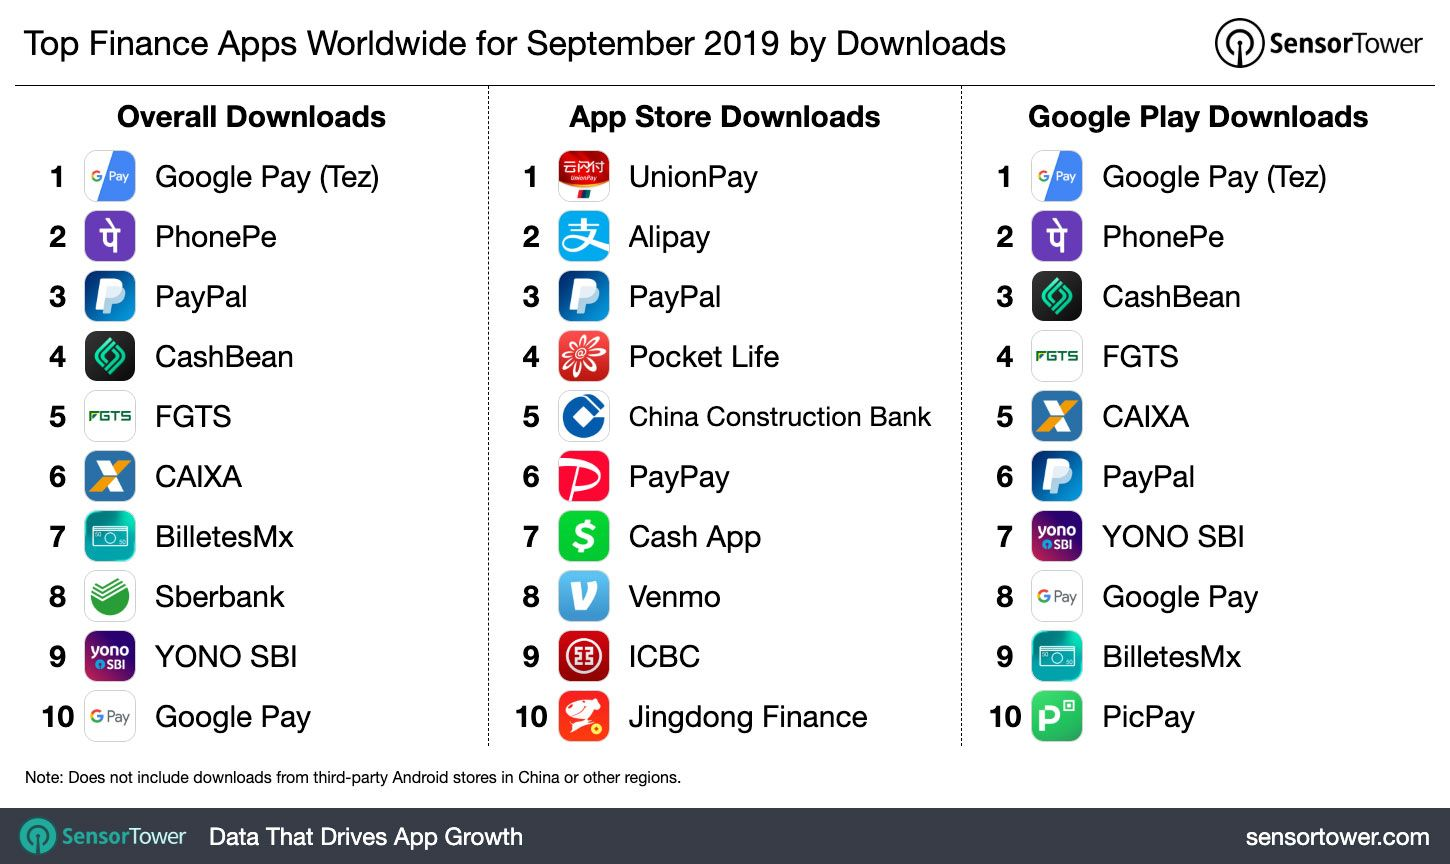 Top Finance Apps Worldwide for September 2019 by Downloads